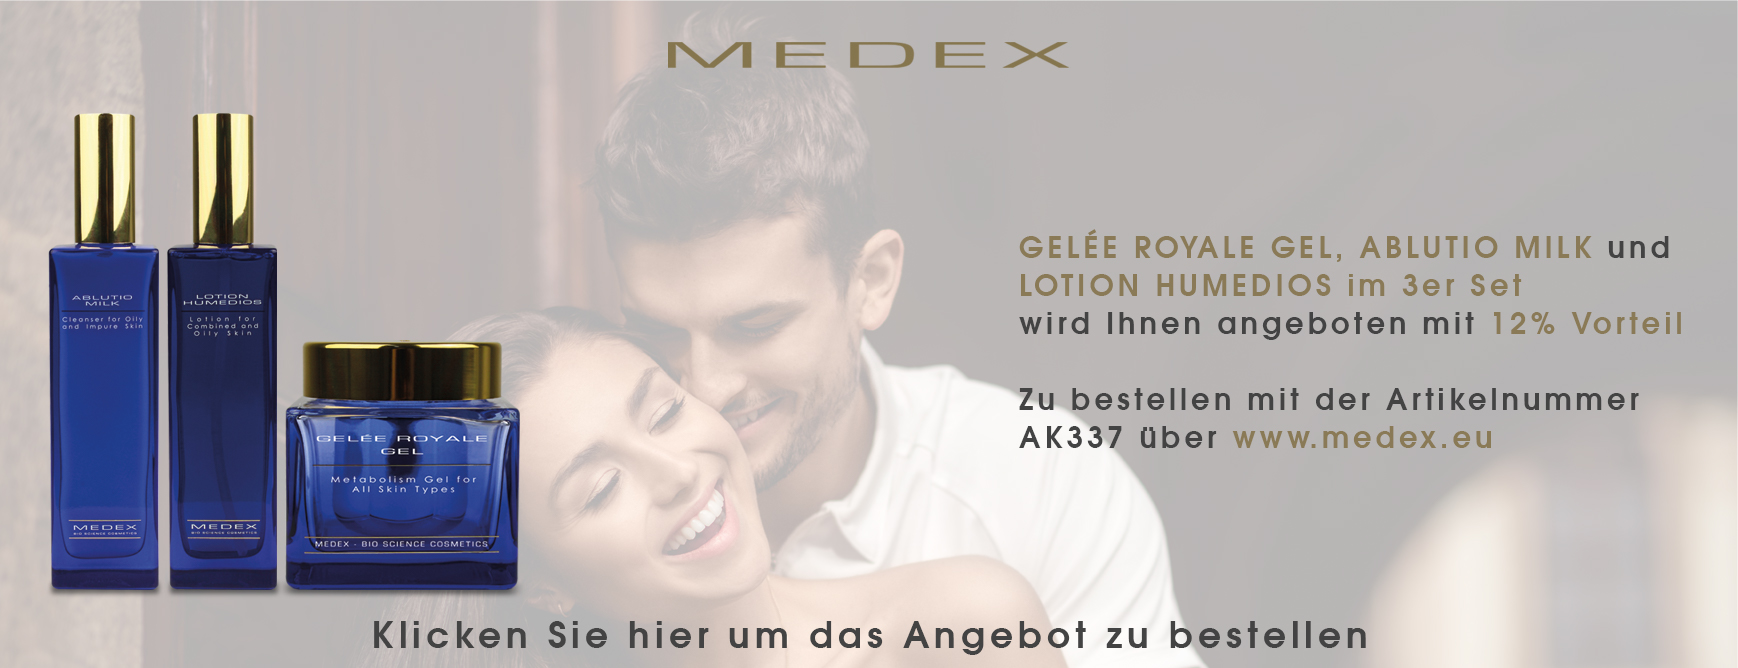 Medex Bio Science Cosmetics - Maskne Konsumenten DE